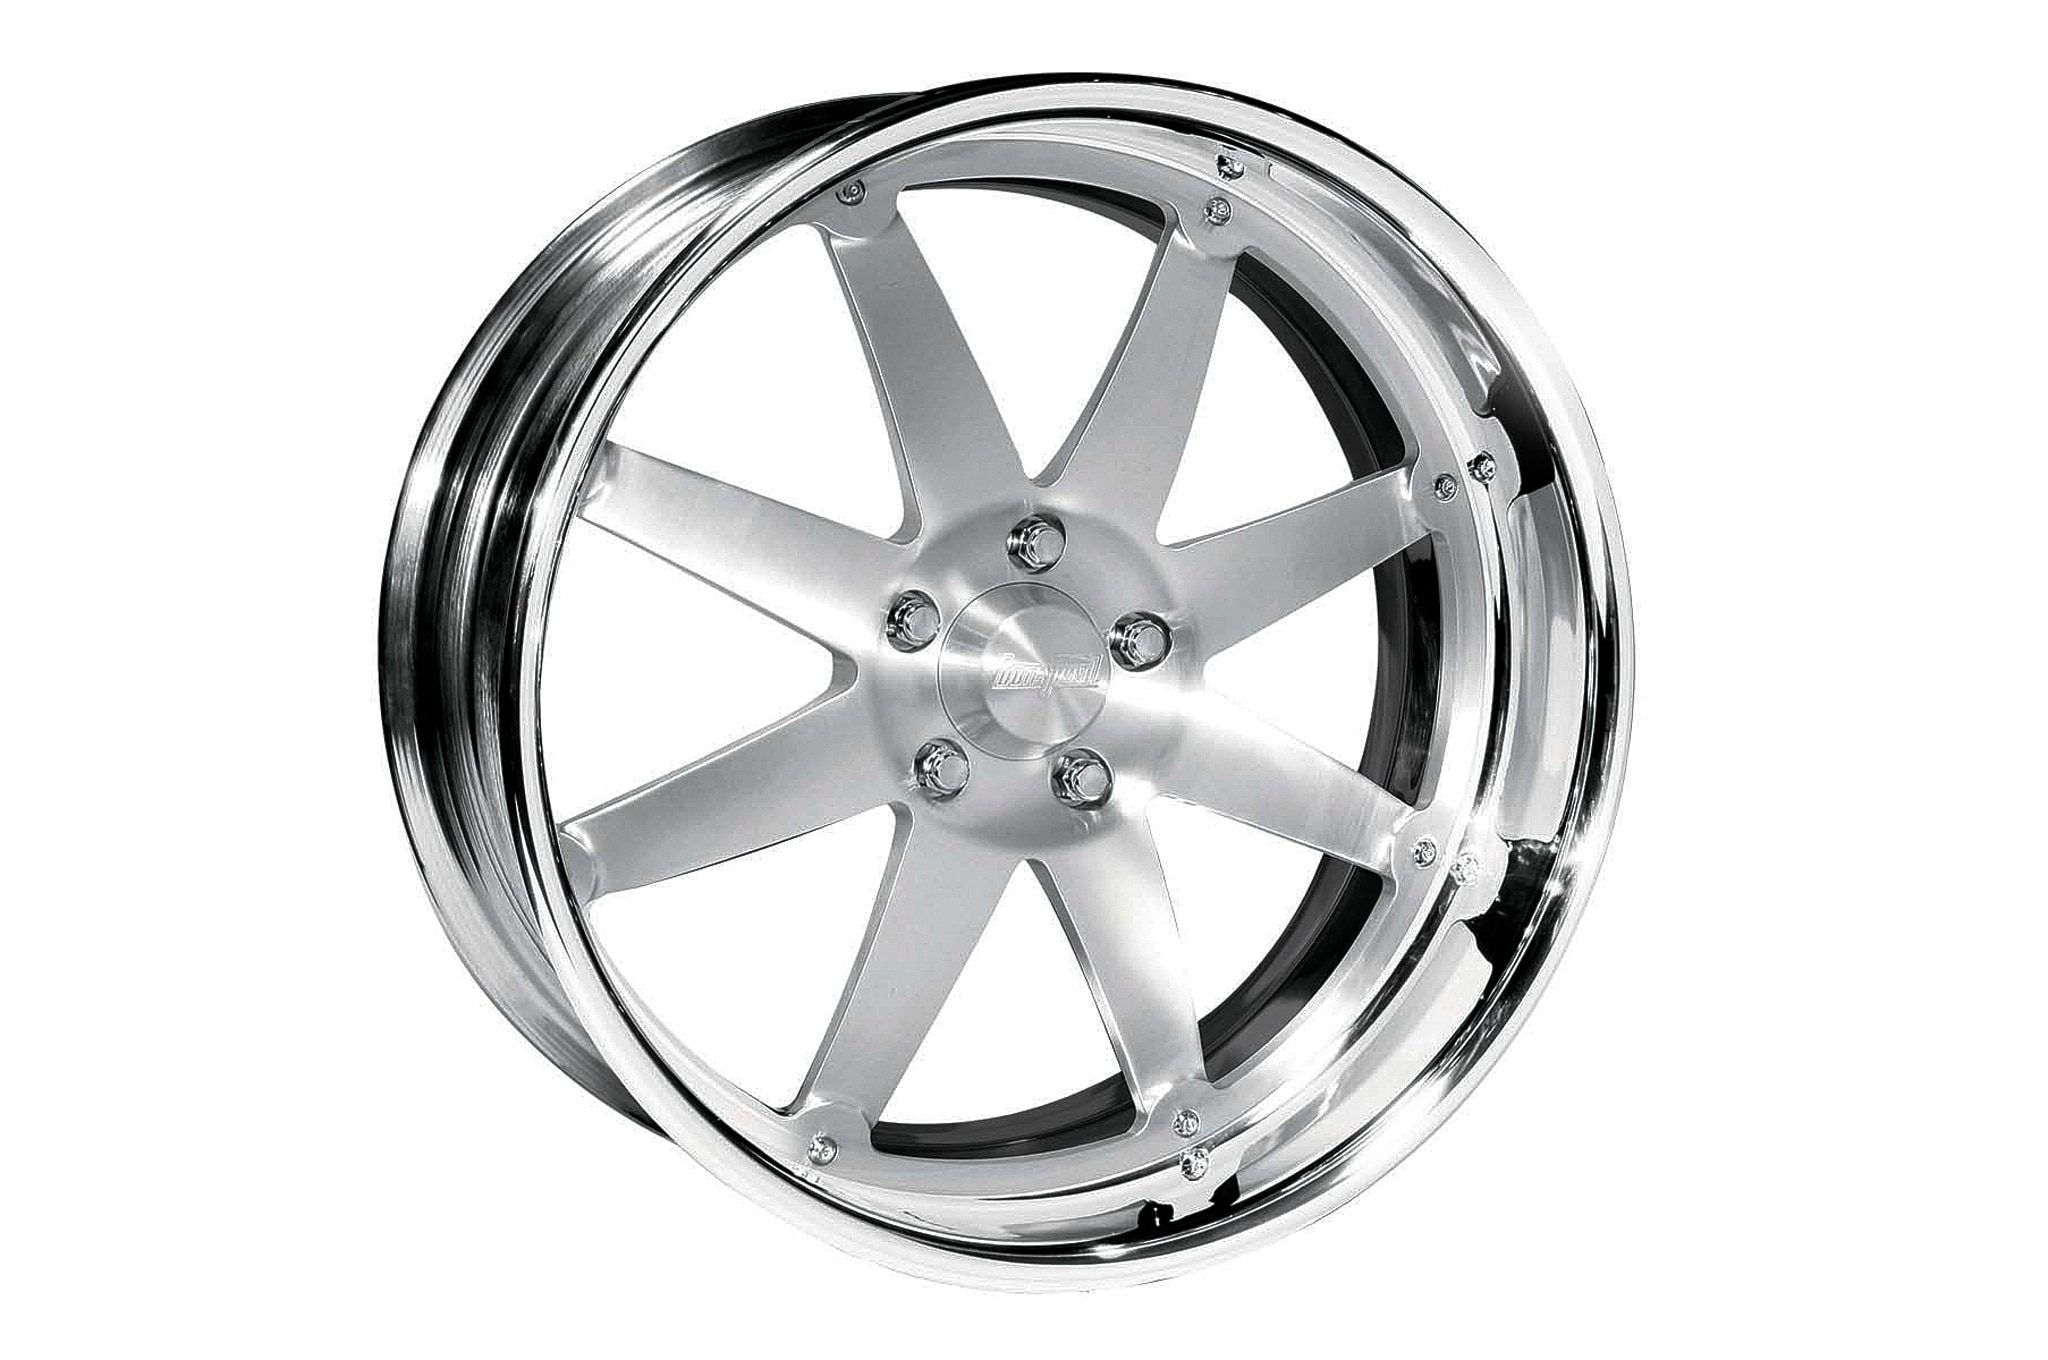 2014 New Truck Wheels Buyers Guide